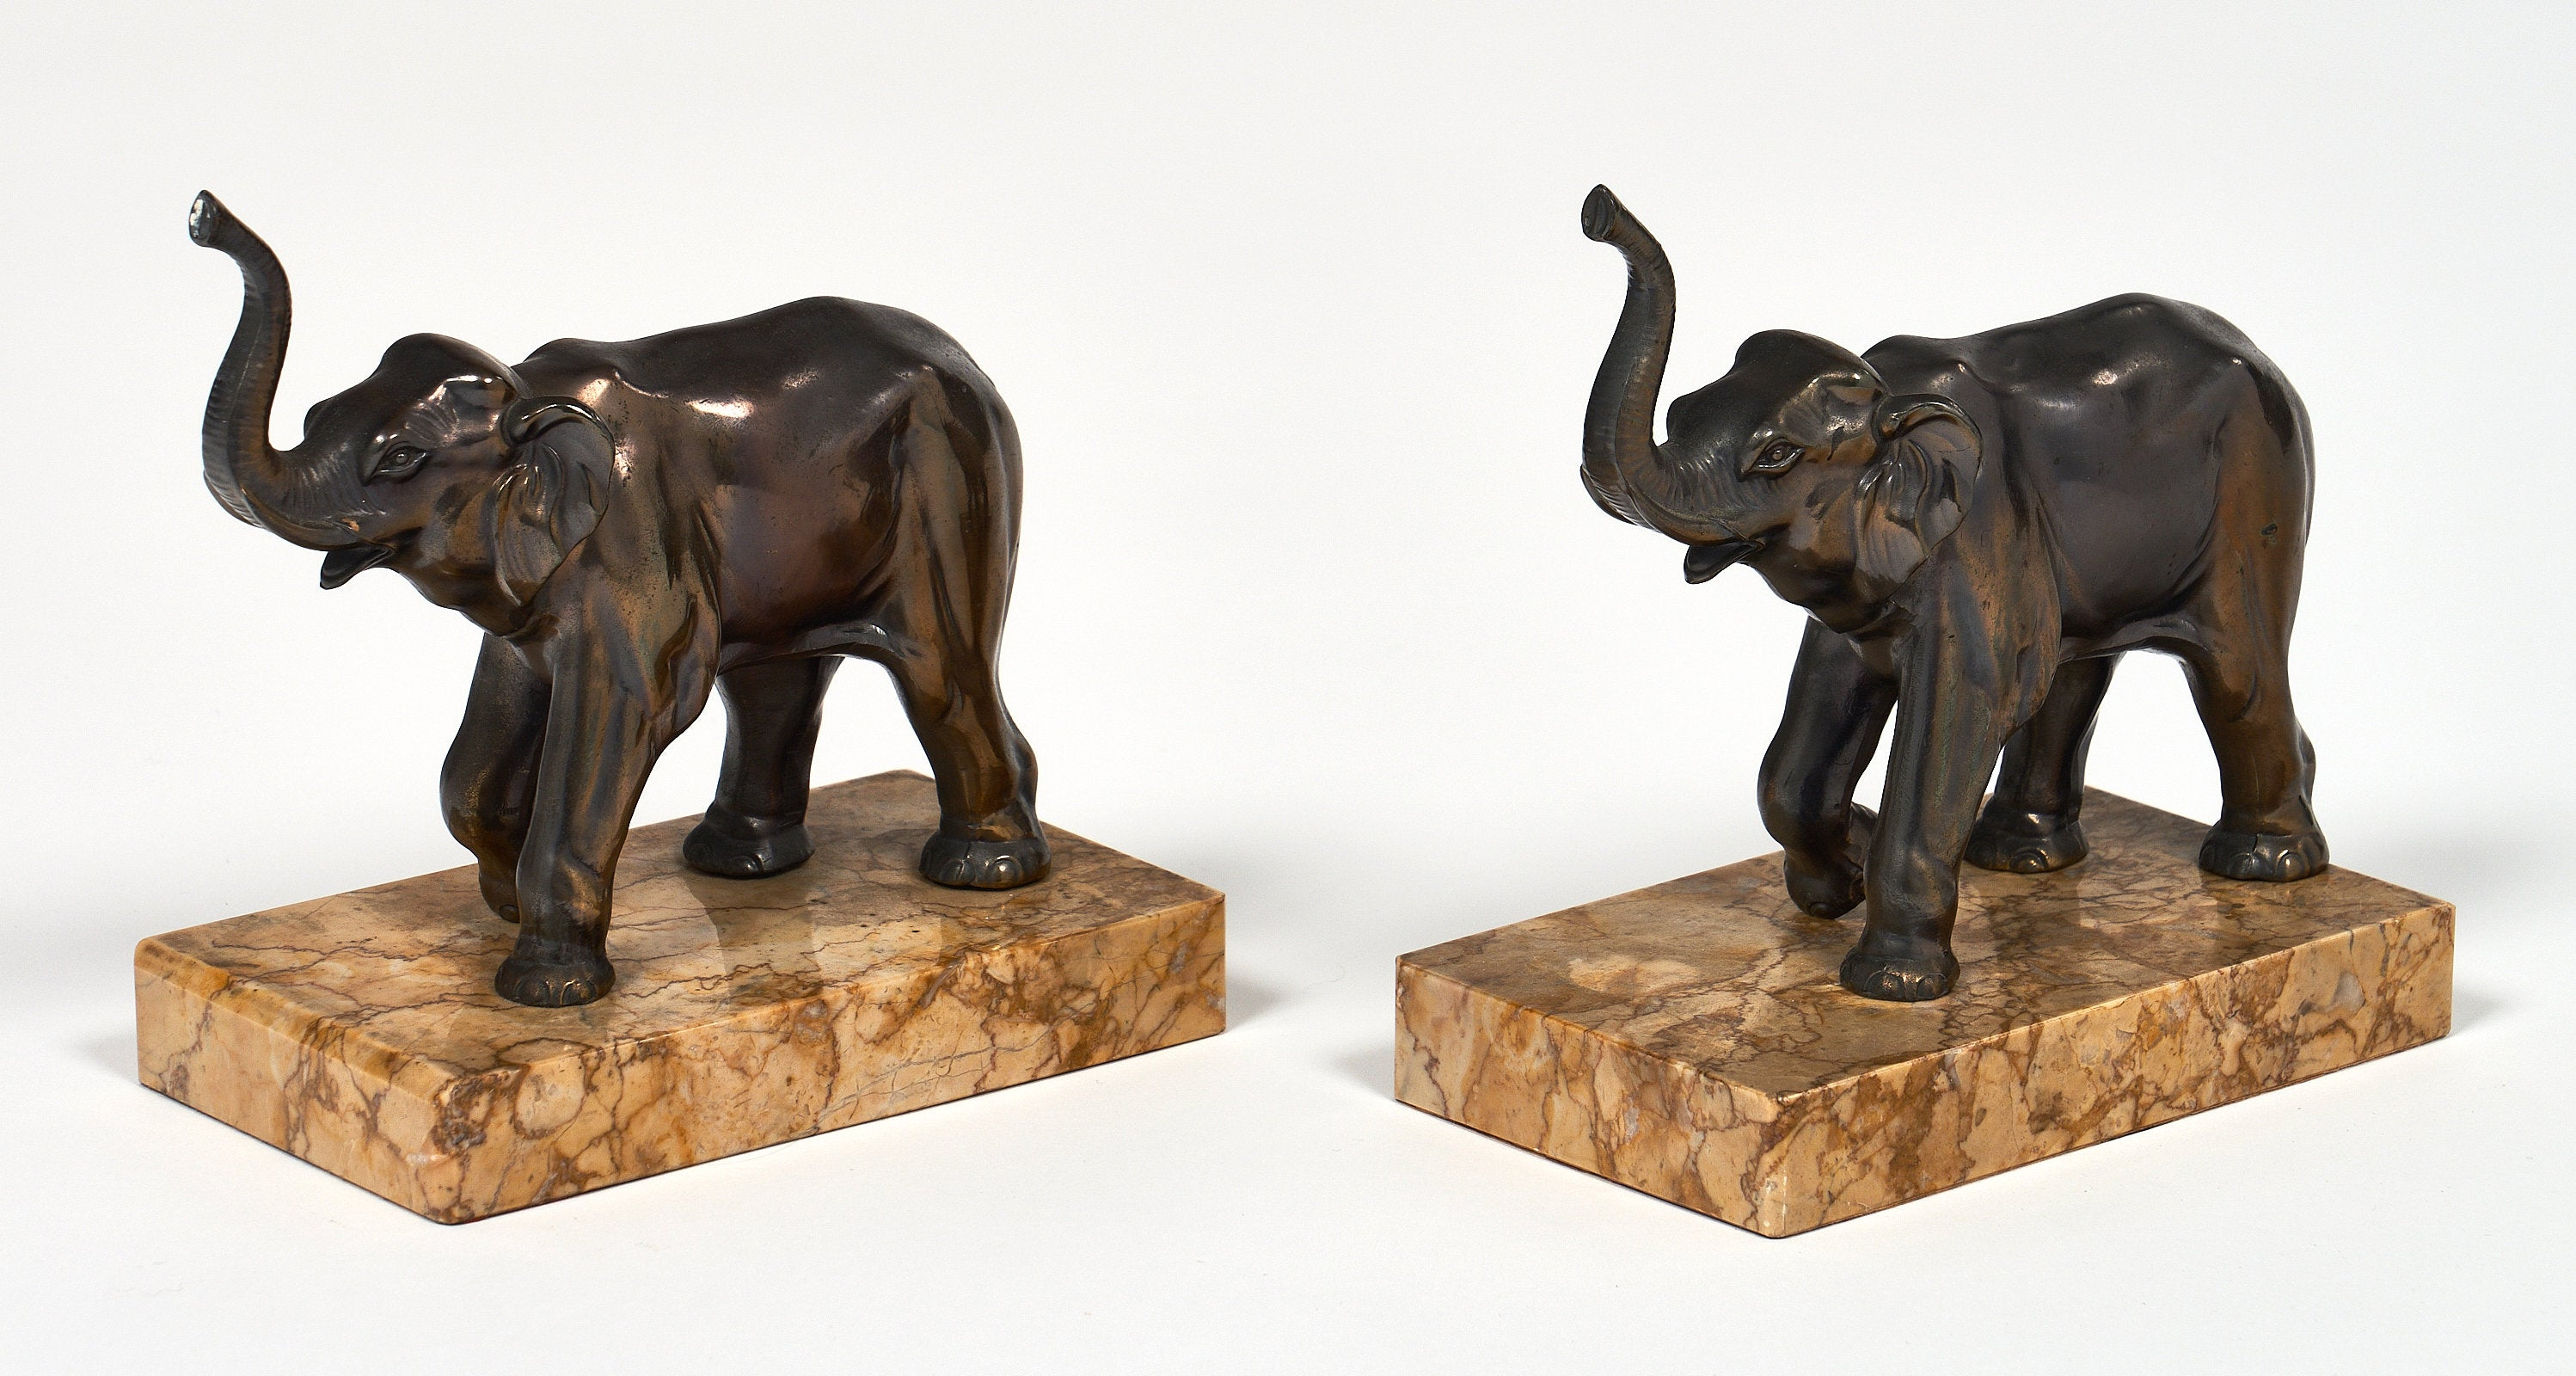 Art Deco Period Elephant Bookends